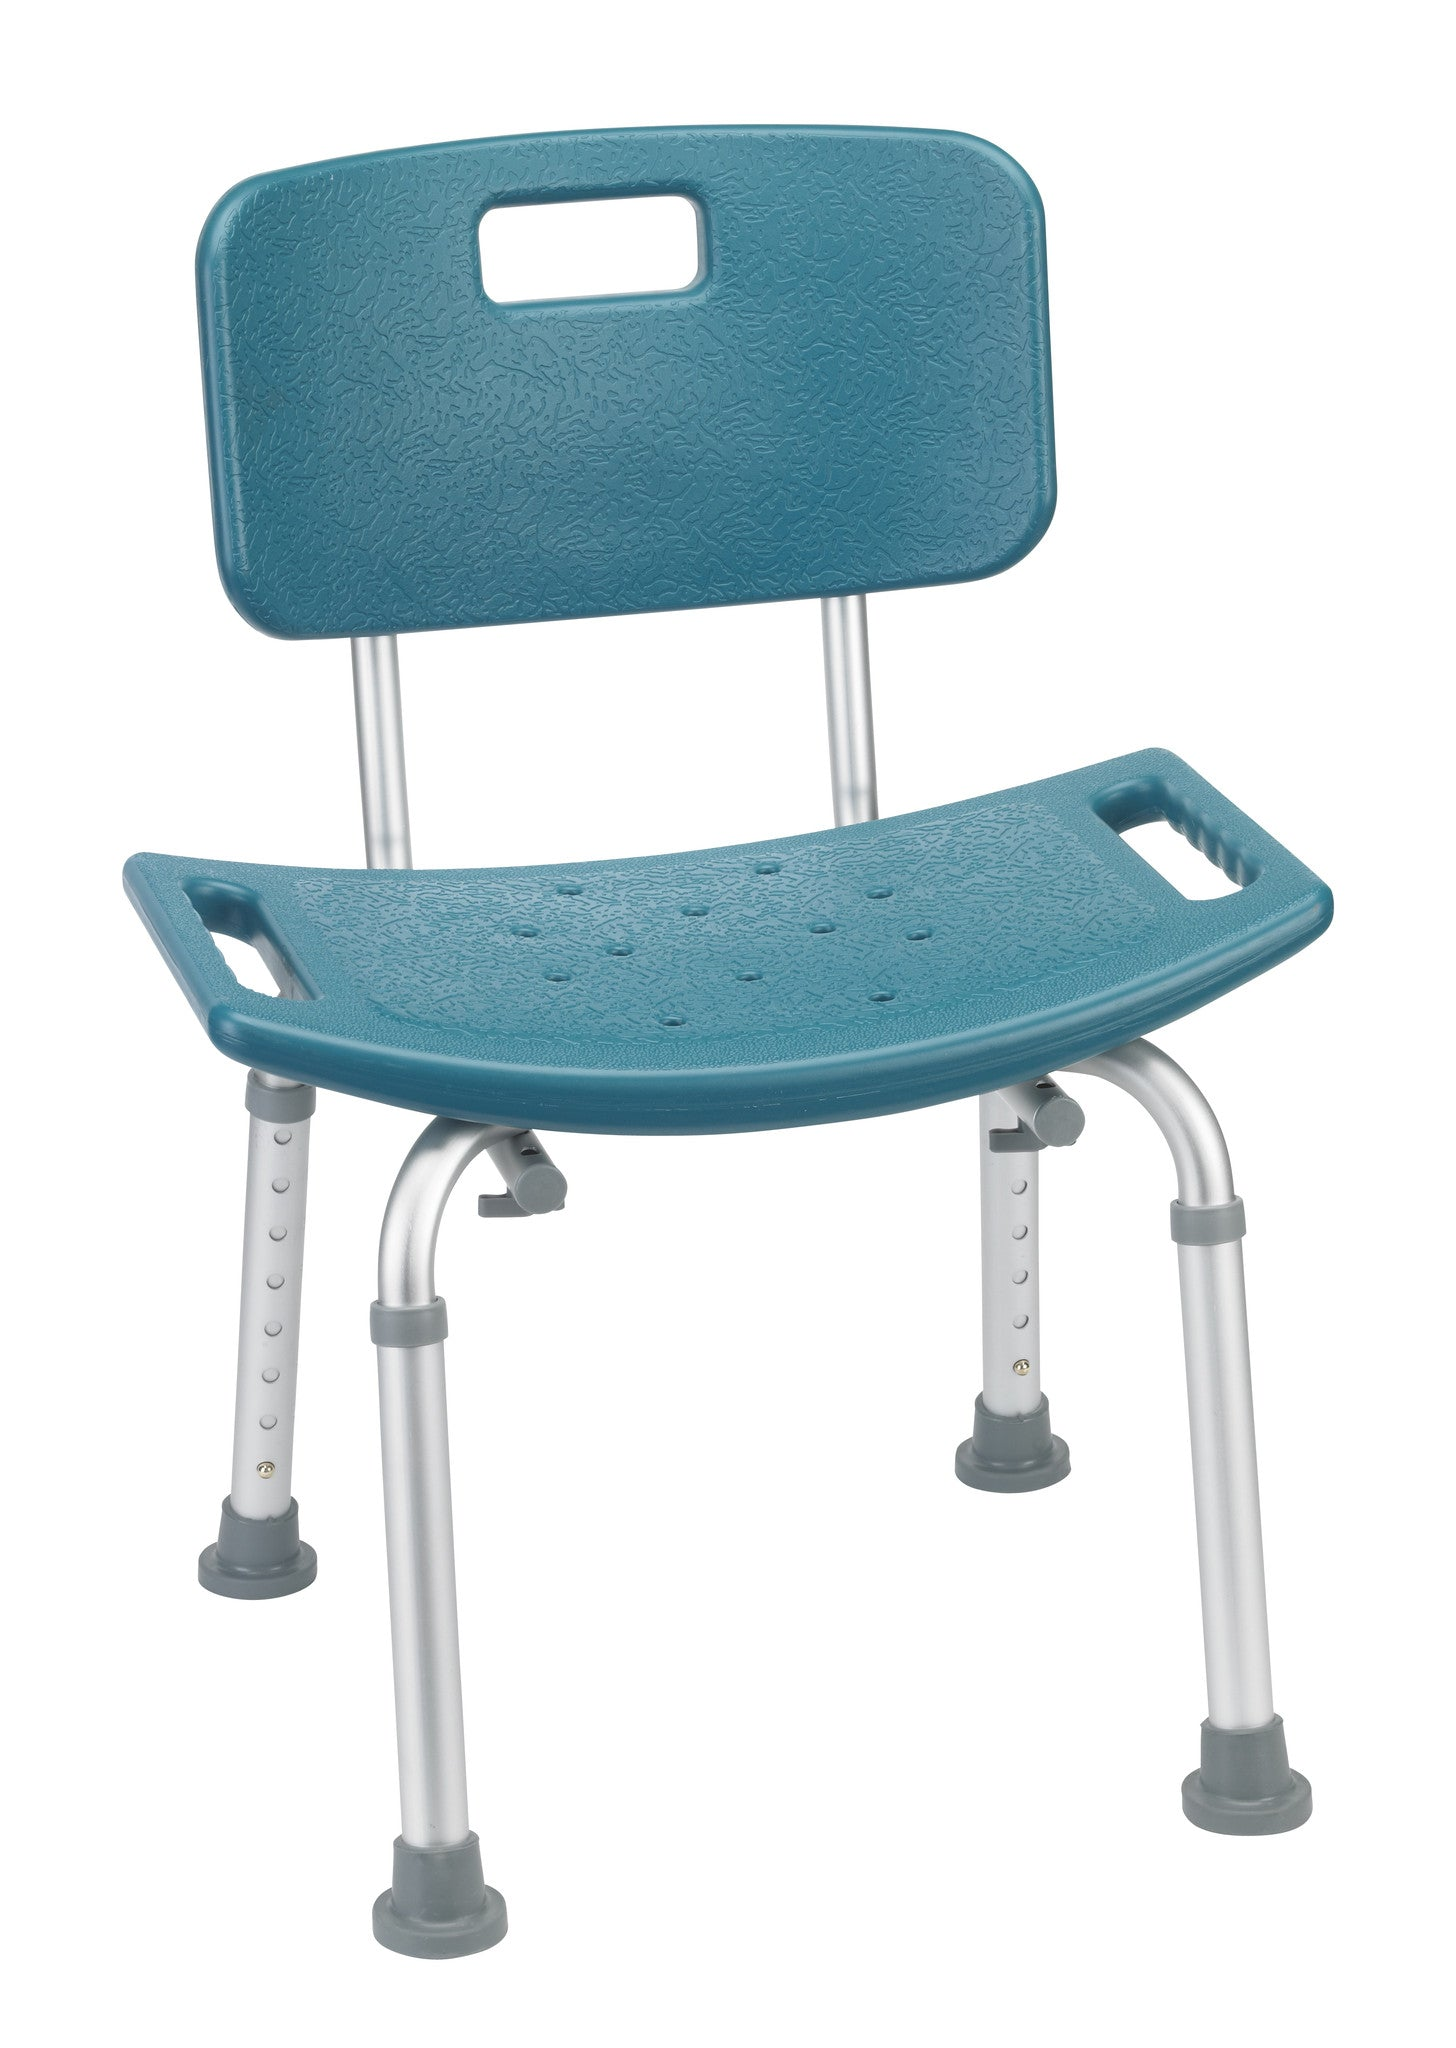 Drive Medical Shower Tub Bench Chair with Back | CSA Medical Supply